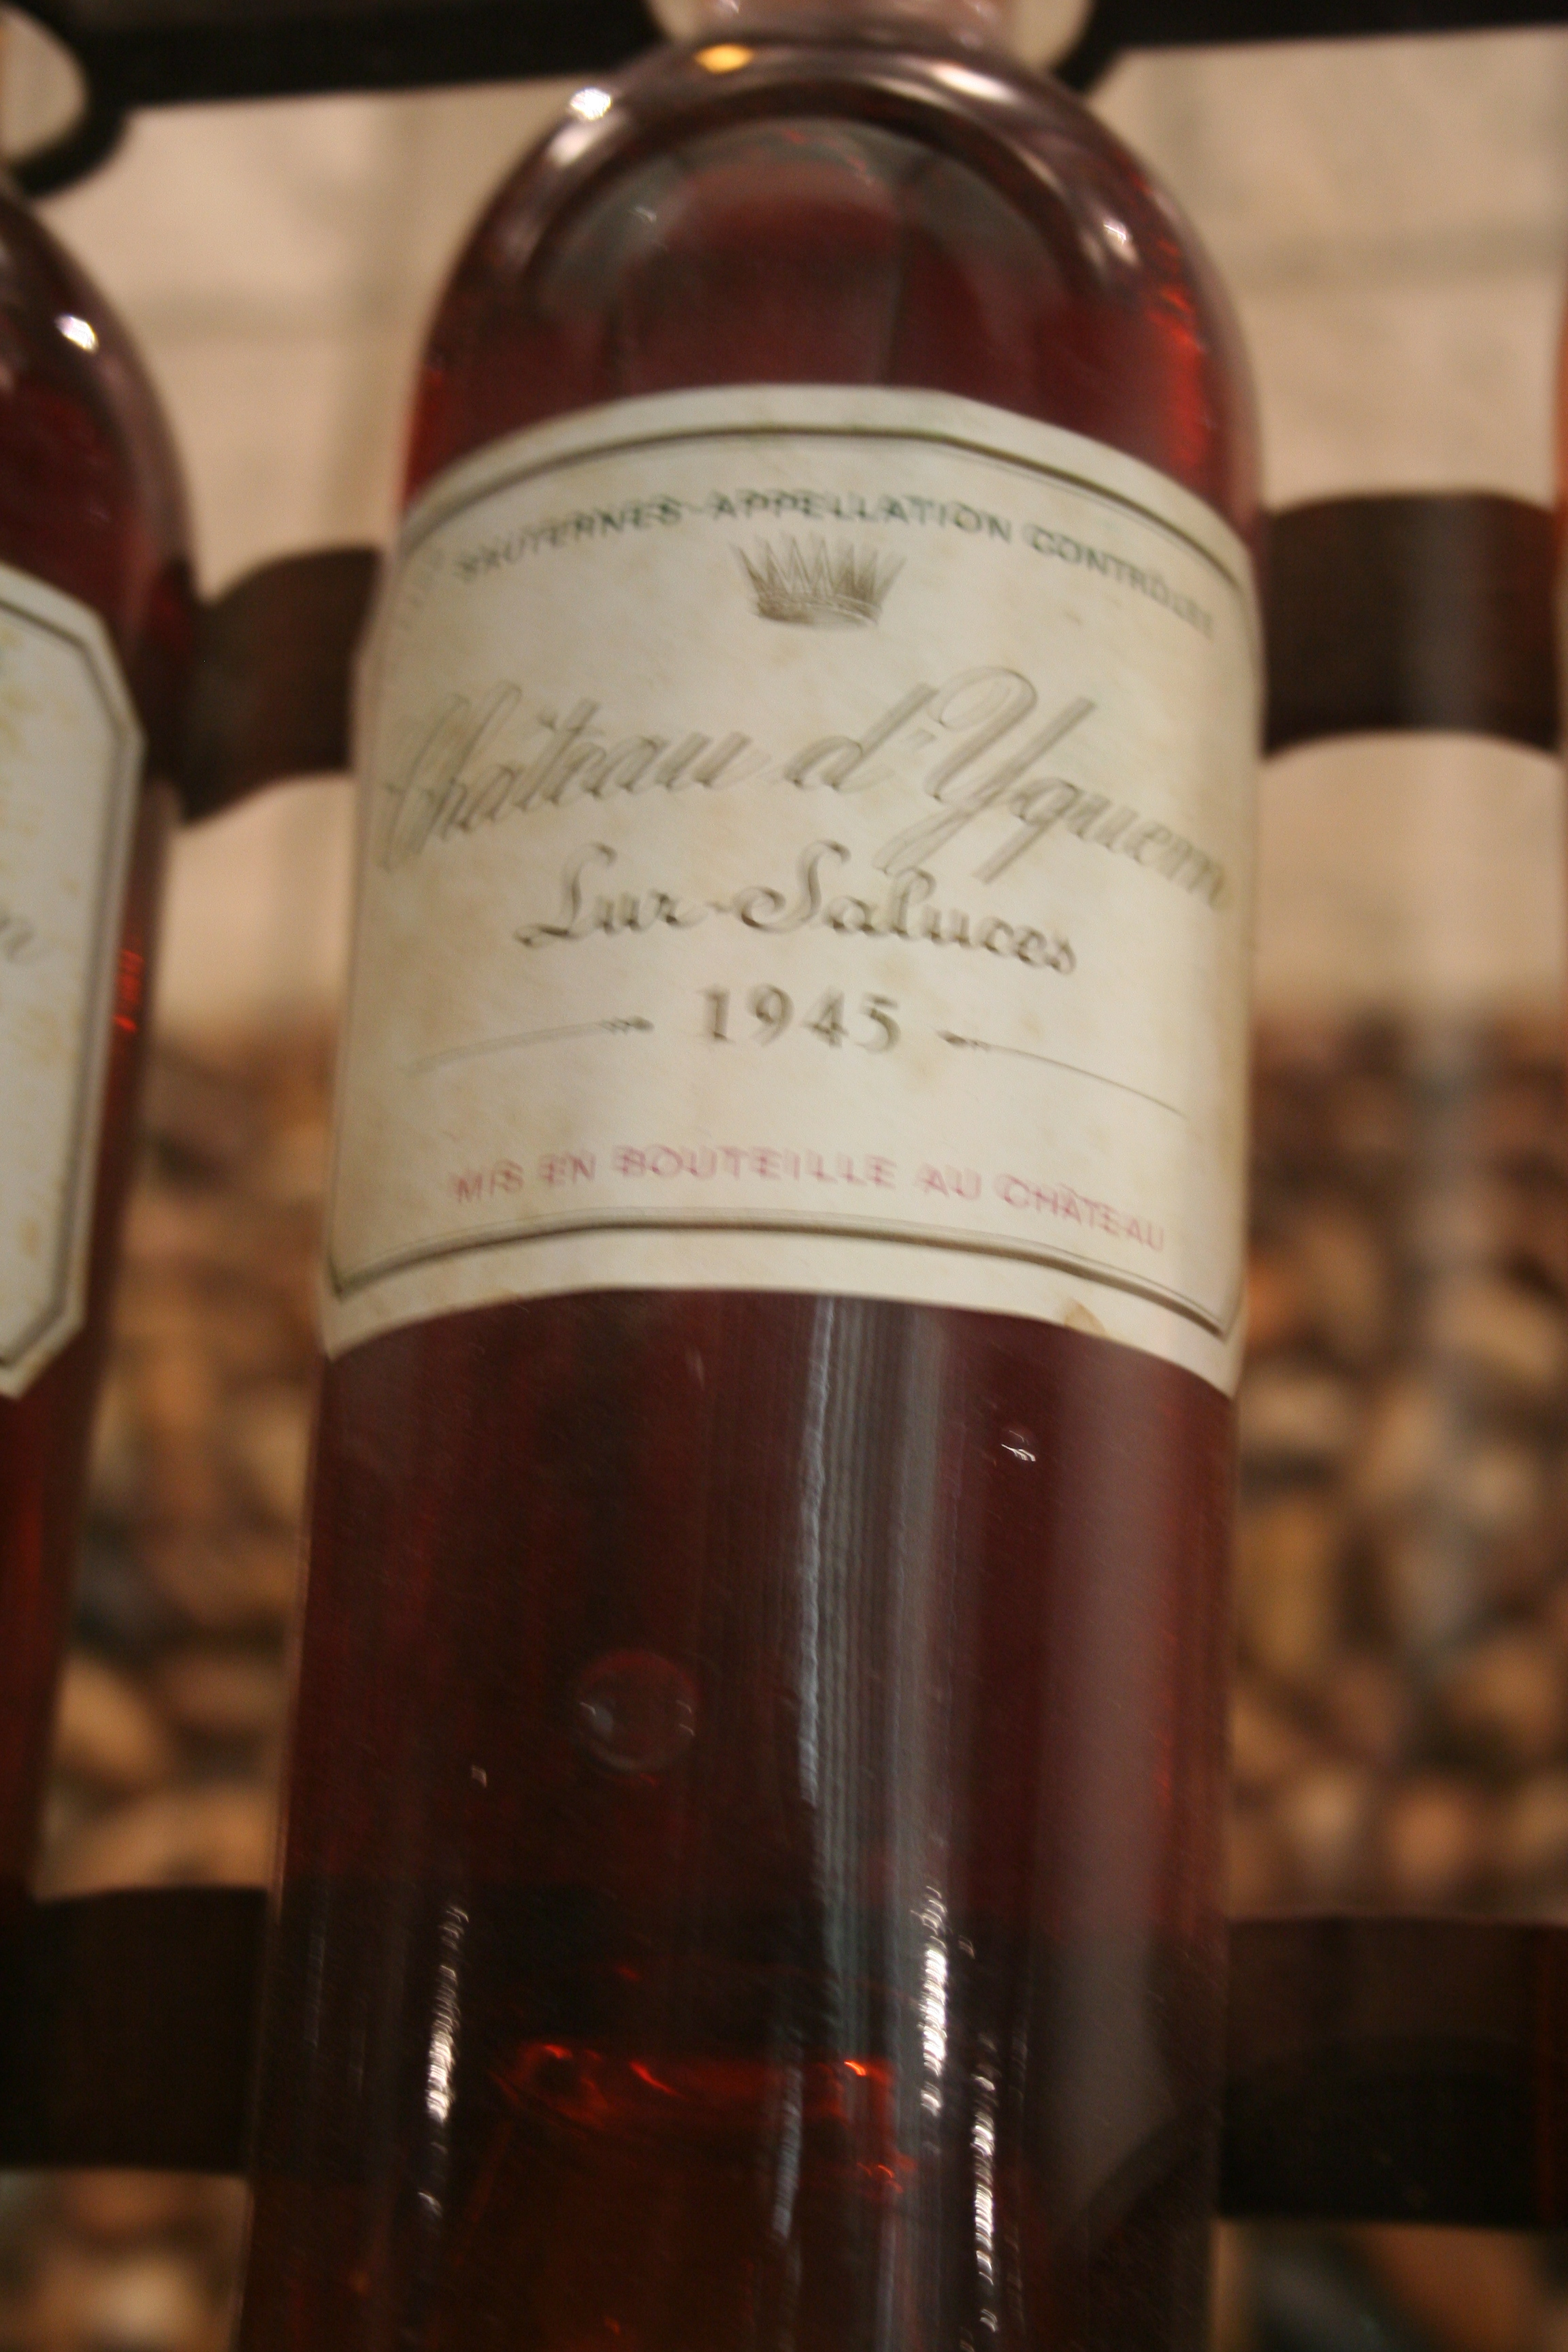 Red Wine Types Chart: Château d7Yquem - Wikipedia,Chart